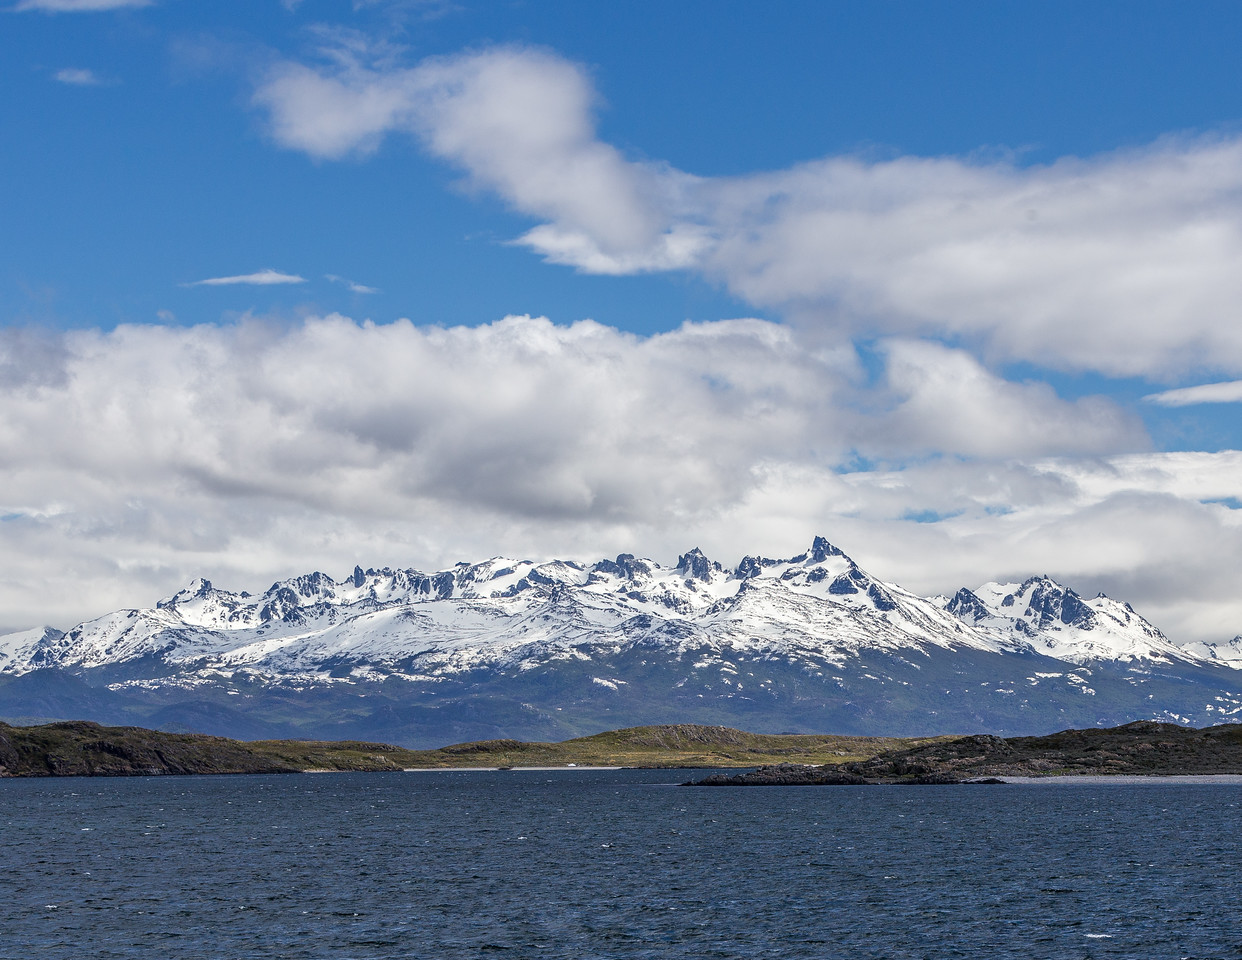 Islas de los Lobos (foreground), East of Ushuaia on the Beagle Channel, Tierra del Fuego, Argentina. In the background: Dientes de Navarino, part of the Andes mountain range on Isla Navarino, Magallanes, Chile.